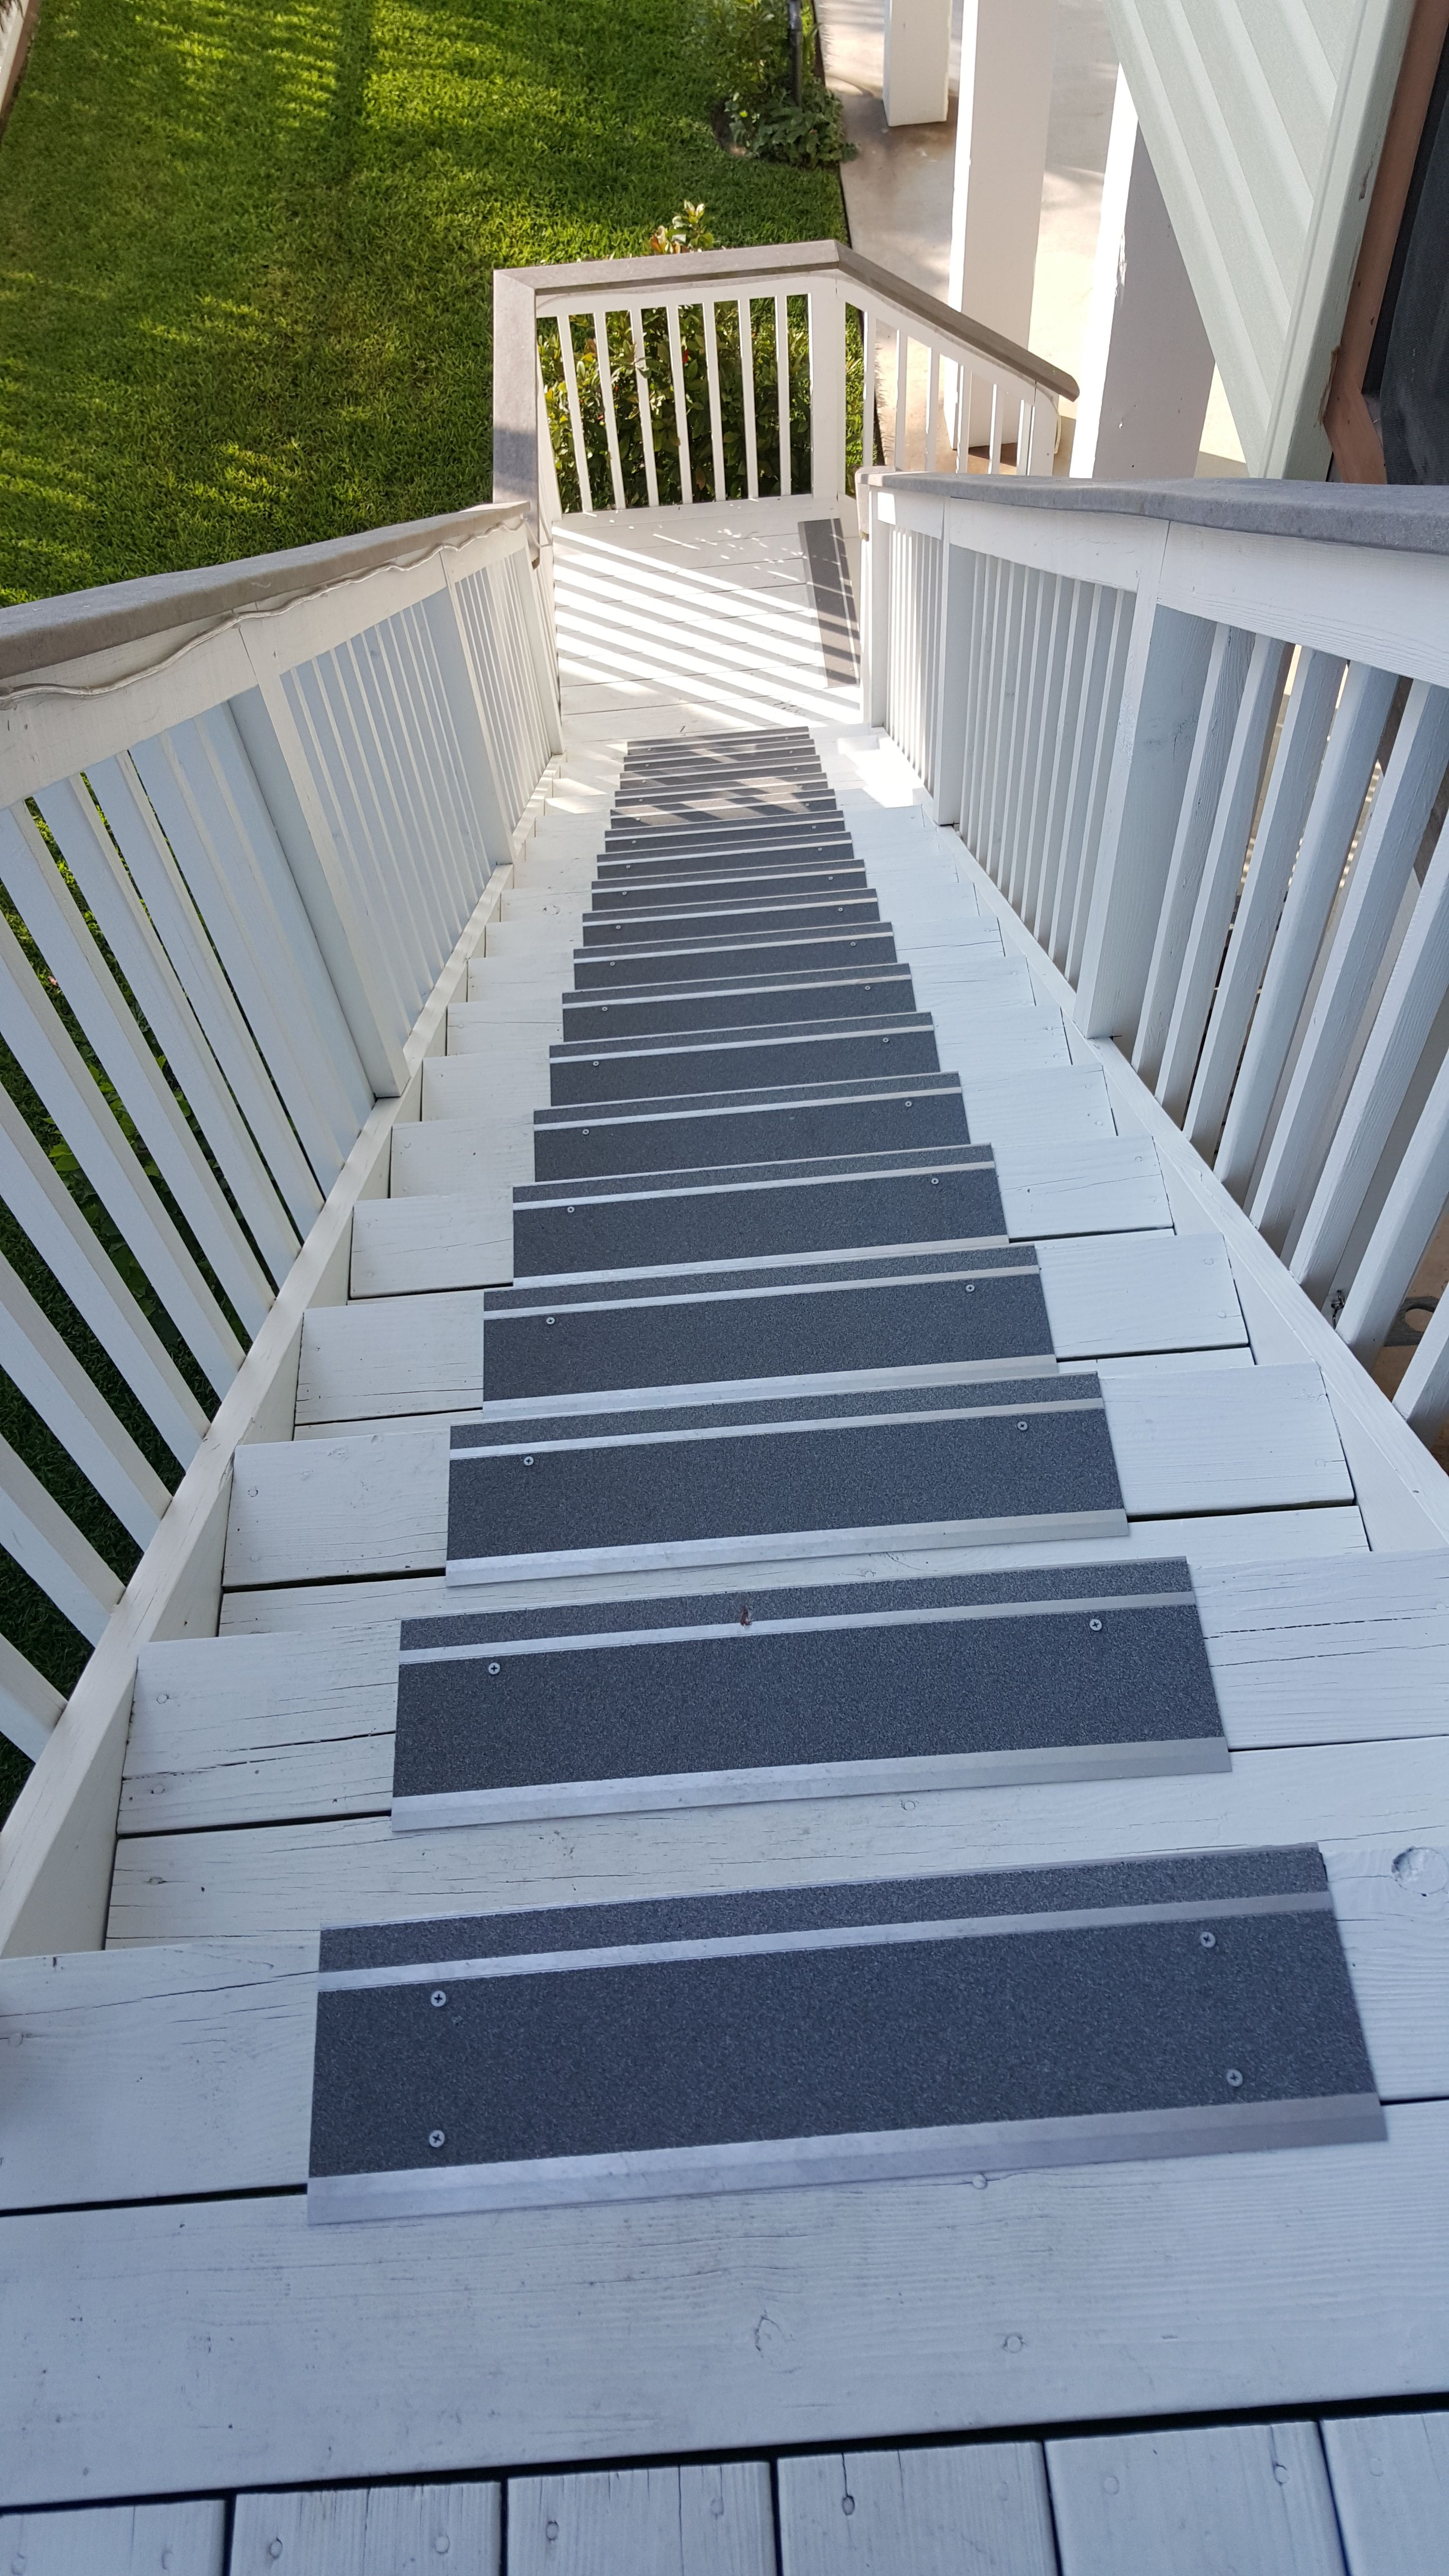 Best Metal Indoor Outdoor Stair Treads Make A Wooden Deck Safer 640 x 480